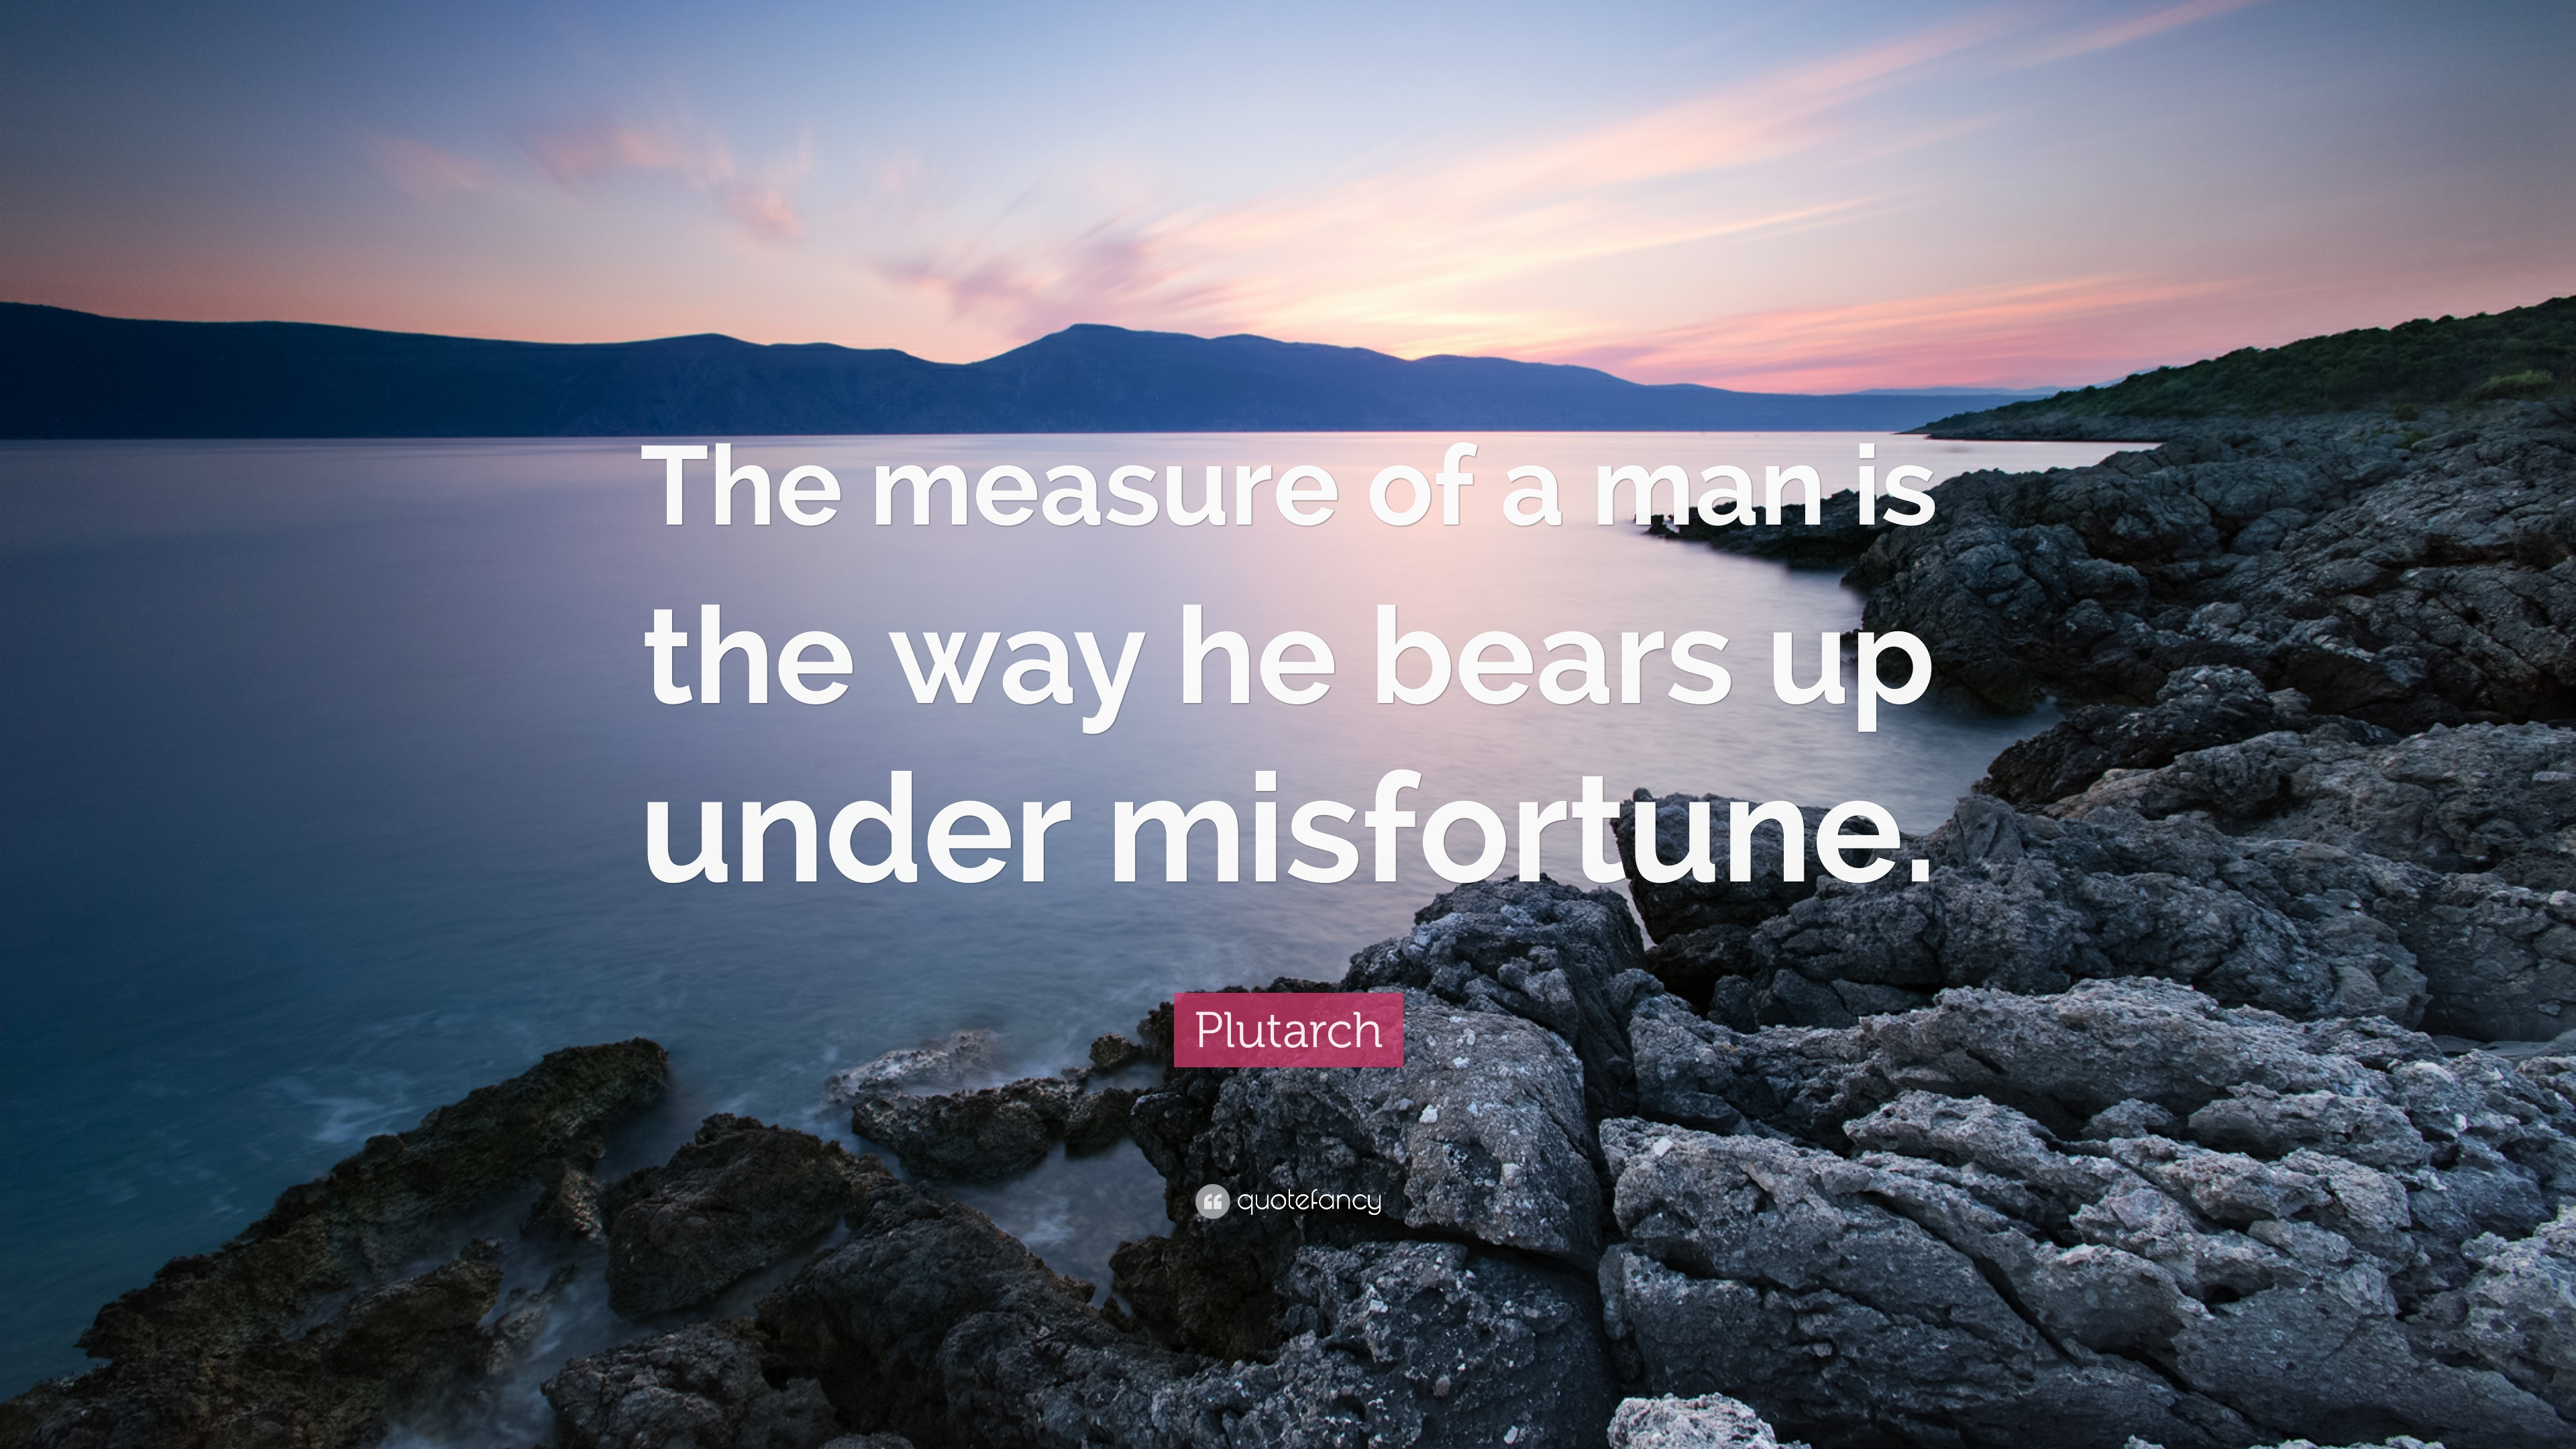 Plutarch Quote The Measure Of A Man Is The Way He Bears Up Under